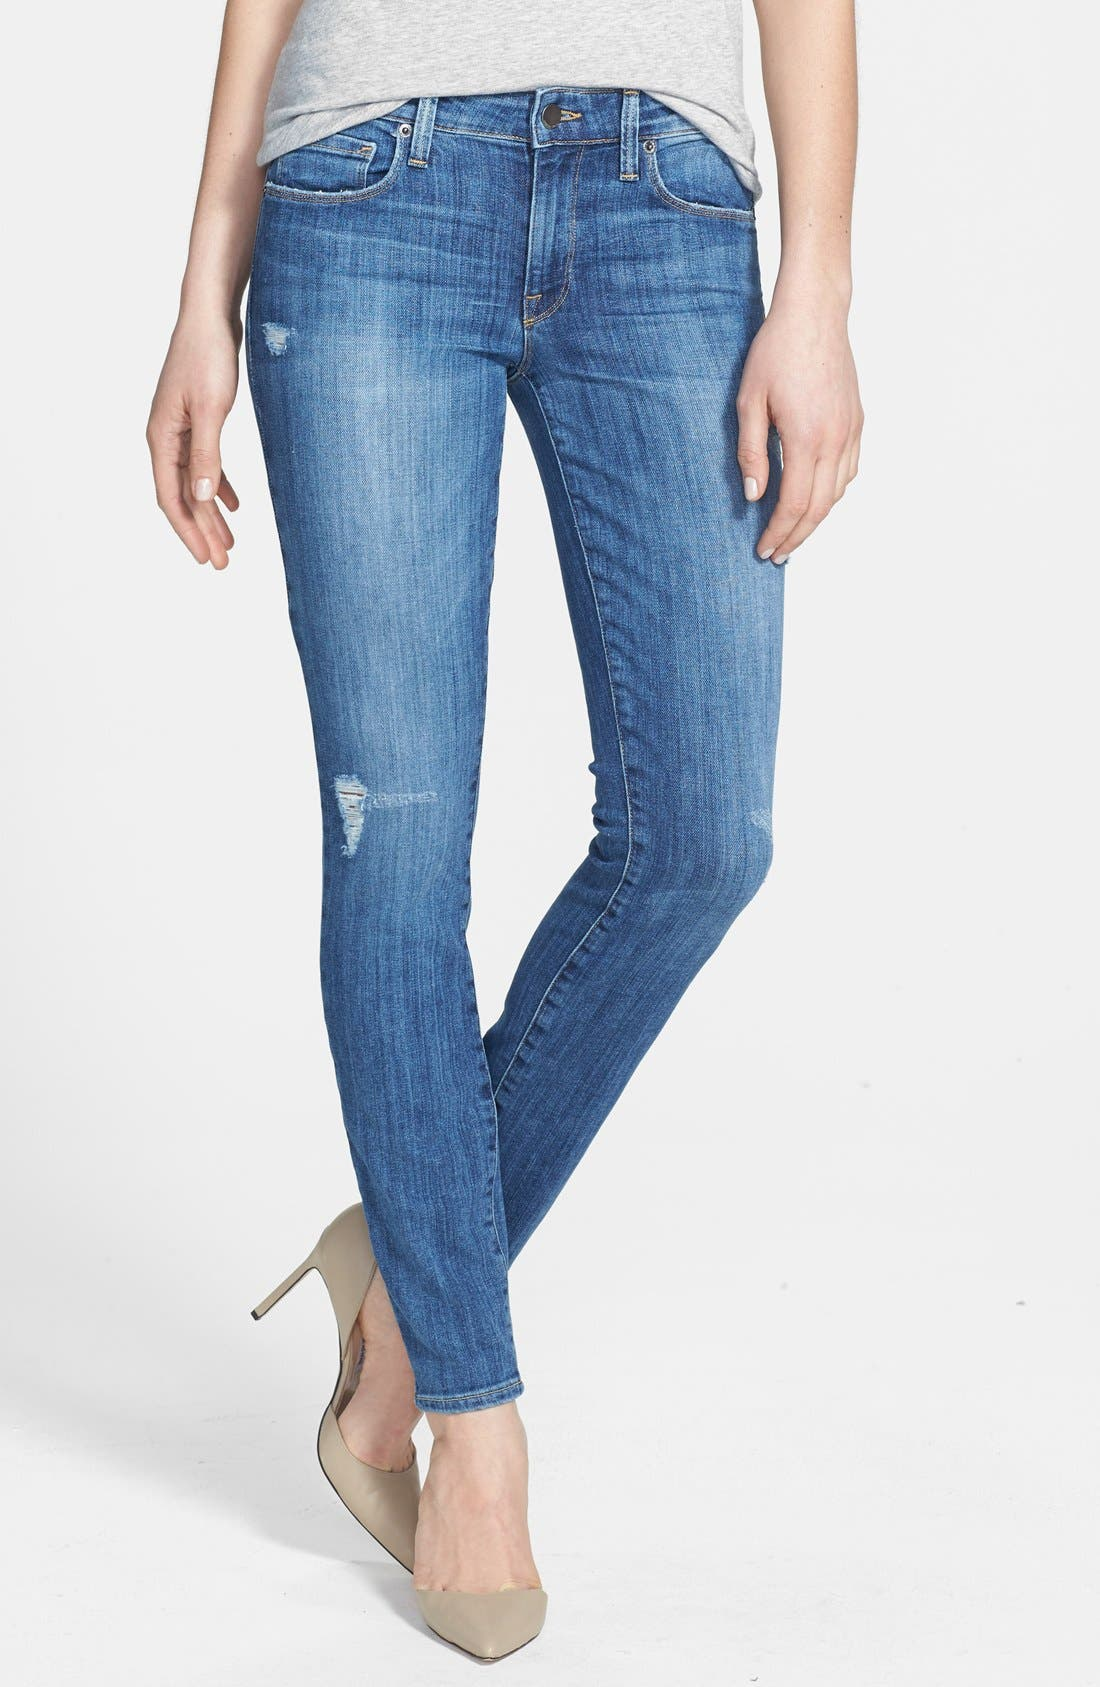 Main Image - Genetic 'Stem' Mid Rise Skinny Jeans (Slash)